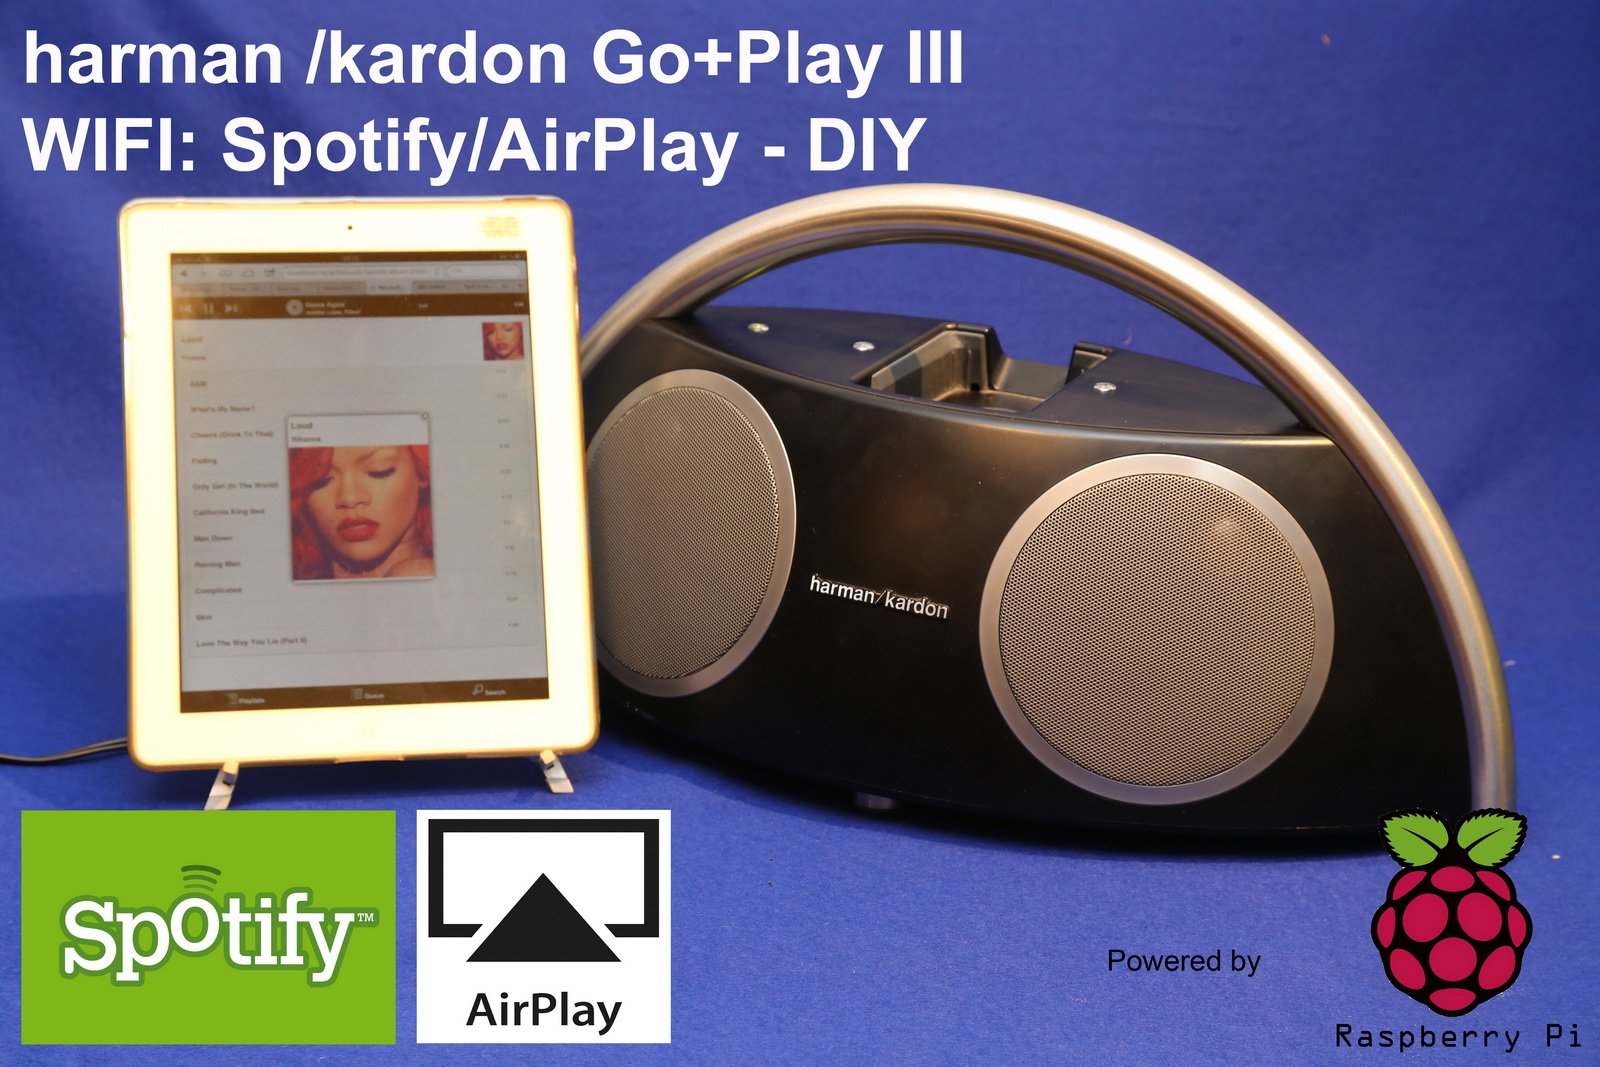 Spotify & Airplay Boombox from a HK Go+Play II